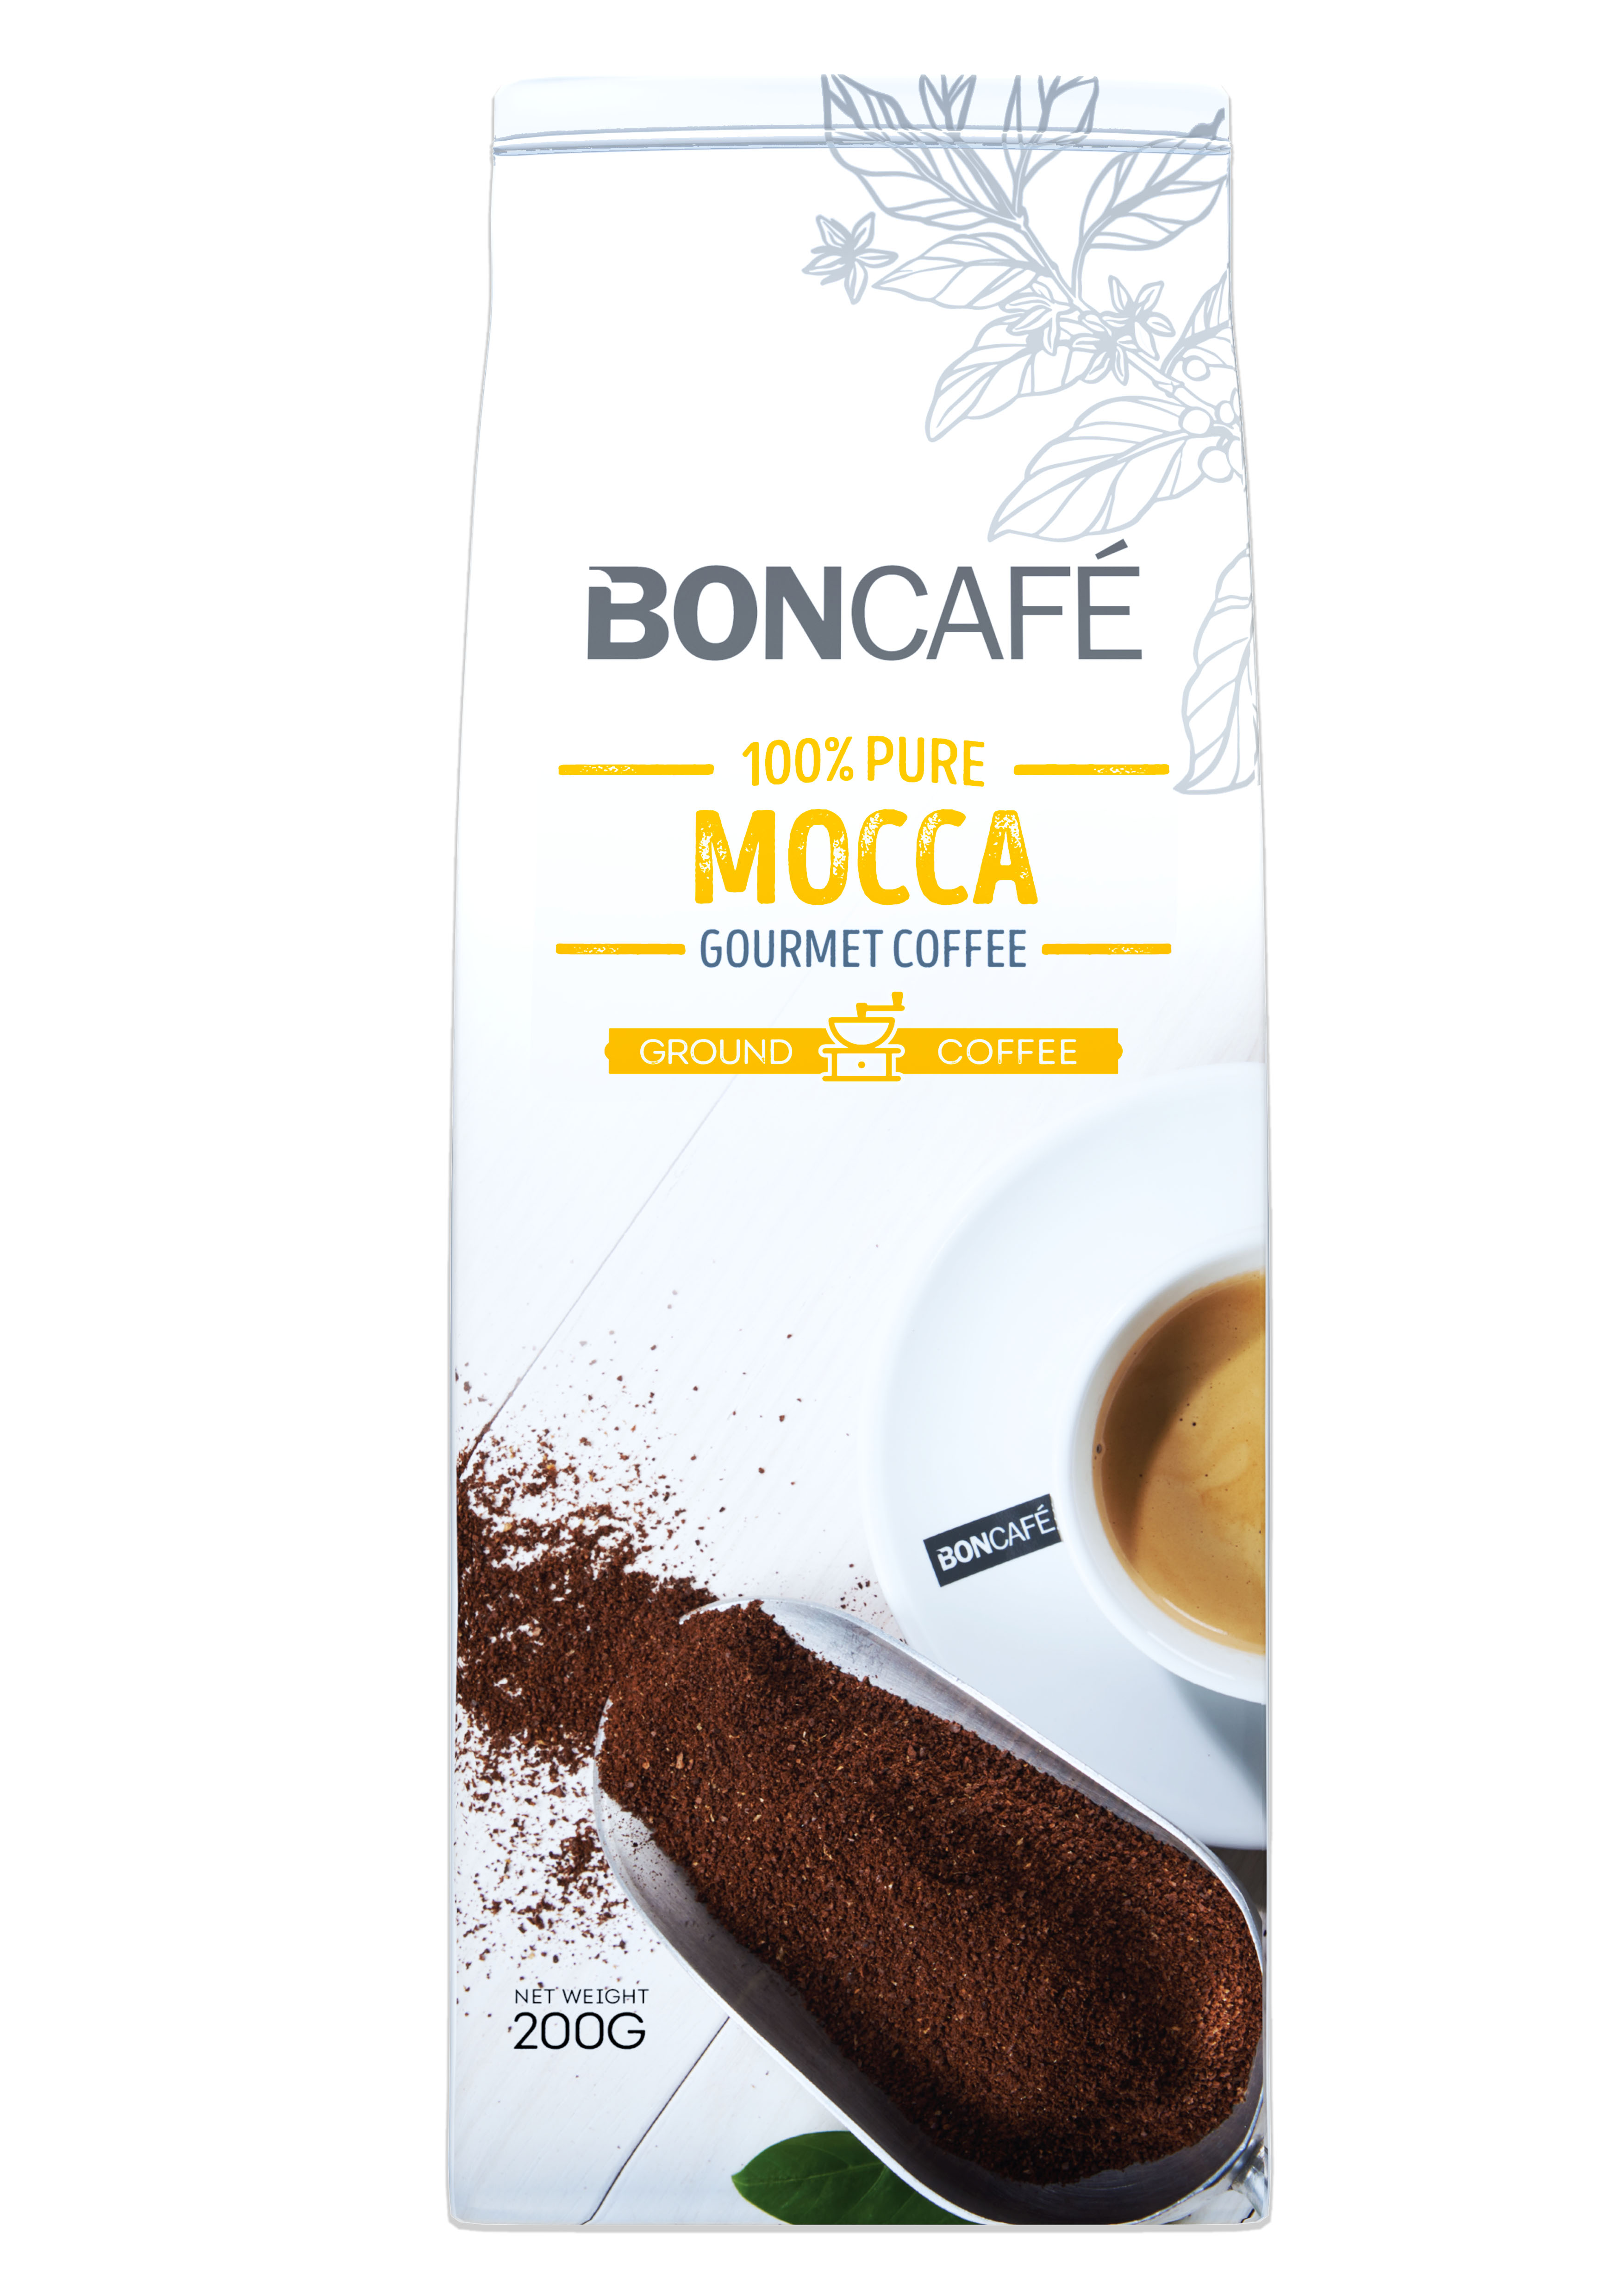 BONCAFÉ - GOURMET COLLECTION GROUND COFFEE: MOCCA BLEND